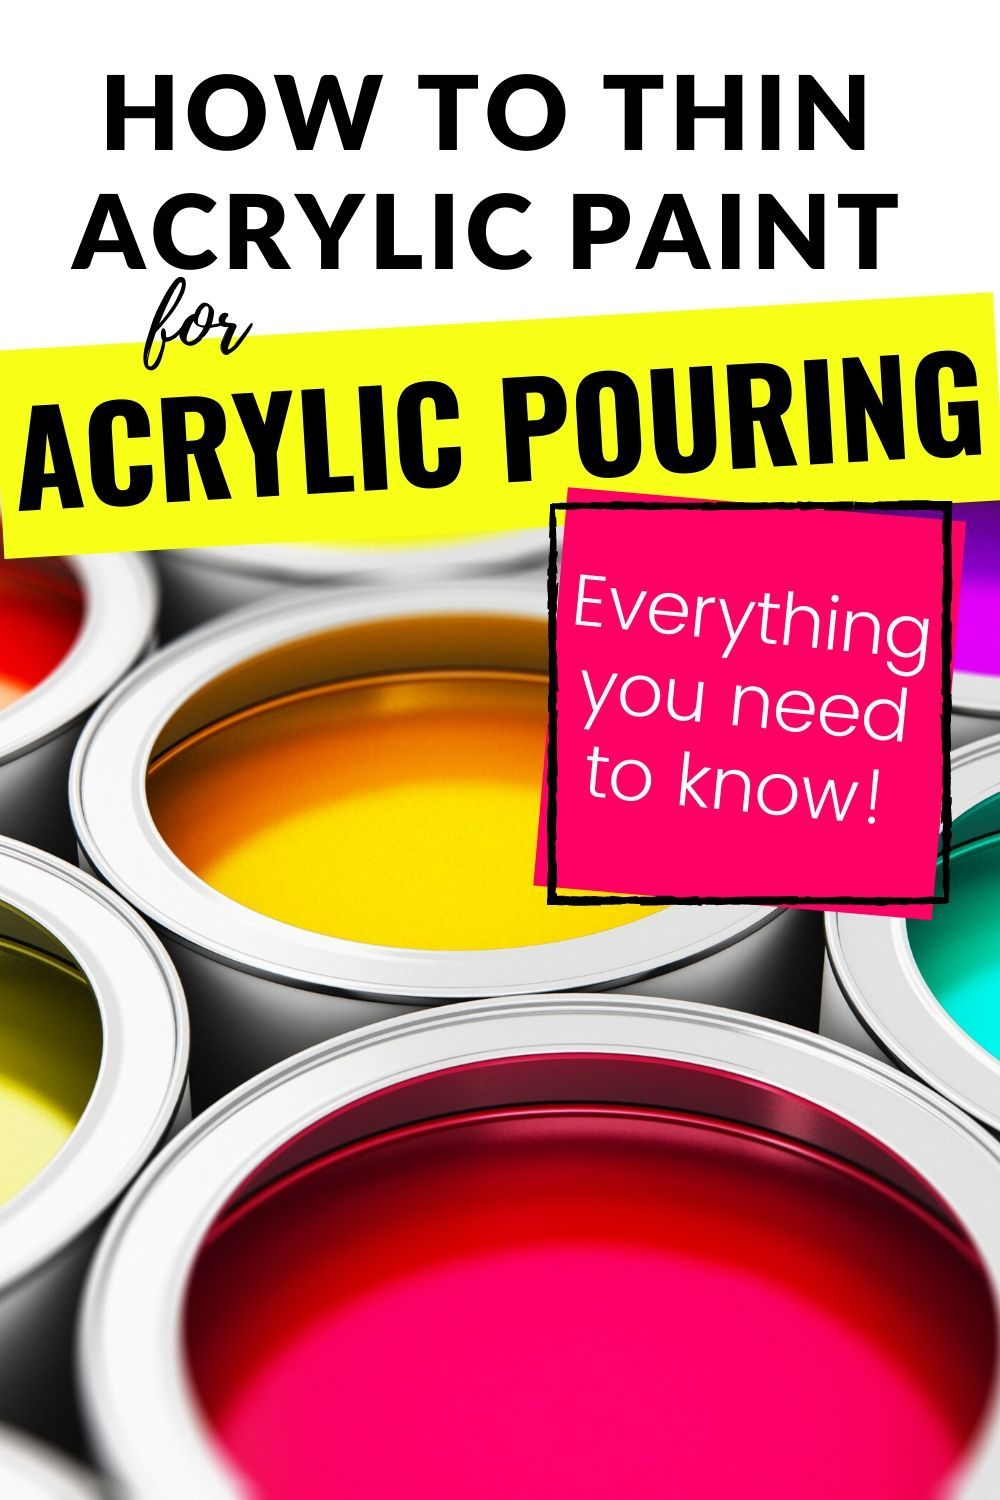 How To Thin Acrylic Paint For Acrylic Pouring Everything You Need To Know In 2020 Acrylic Pouring Acrylic Painting Acrylic Pouring Techniques